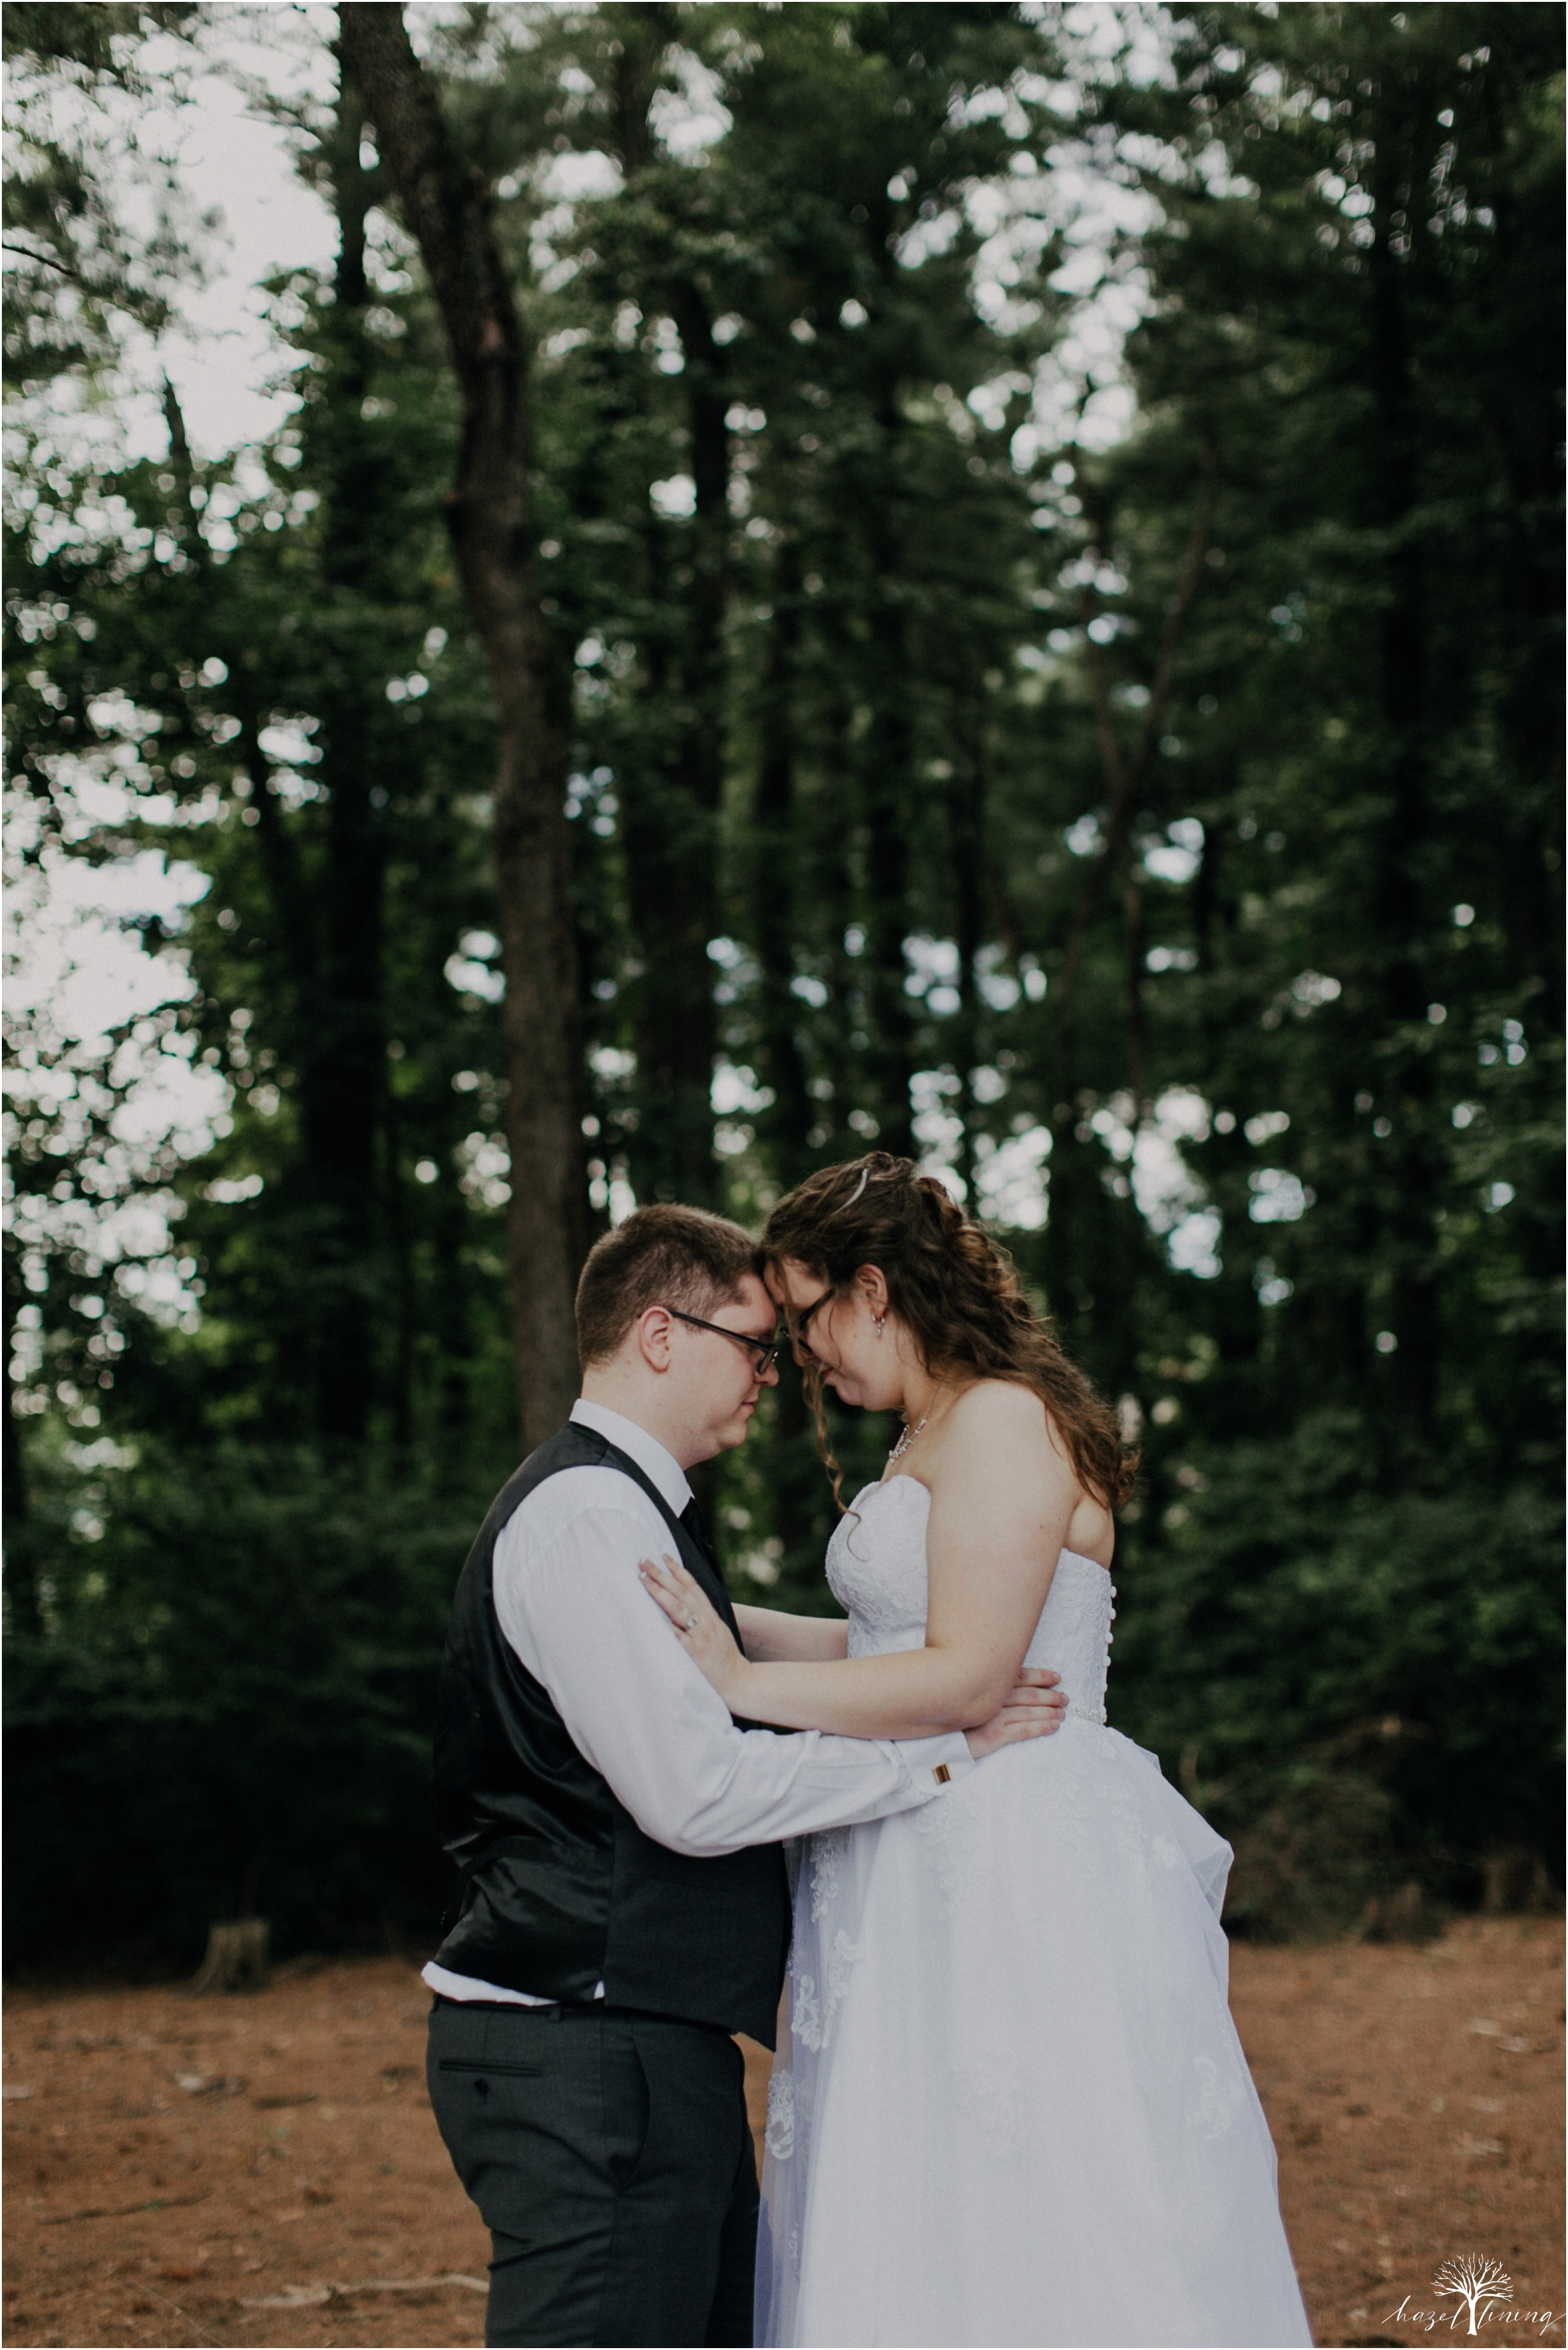 laura-zach-mccaskill-harmony-hall-lebanon-valley-college-summer-wedding-hazel-lining-photography-destination-elopement-wedding-engagement-photography_0144.jpg